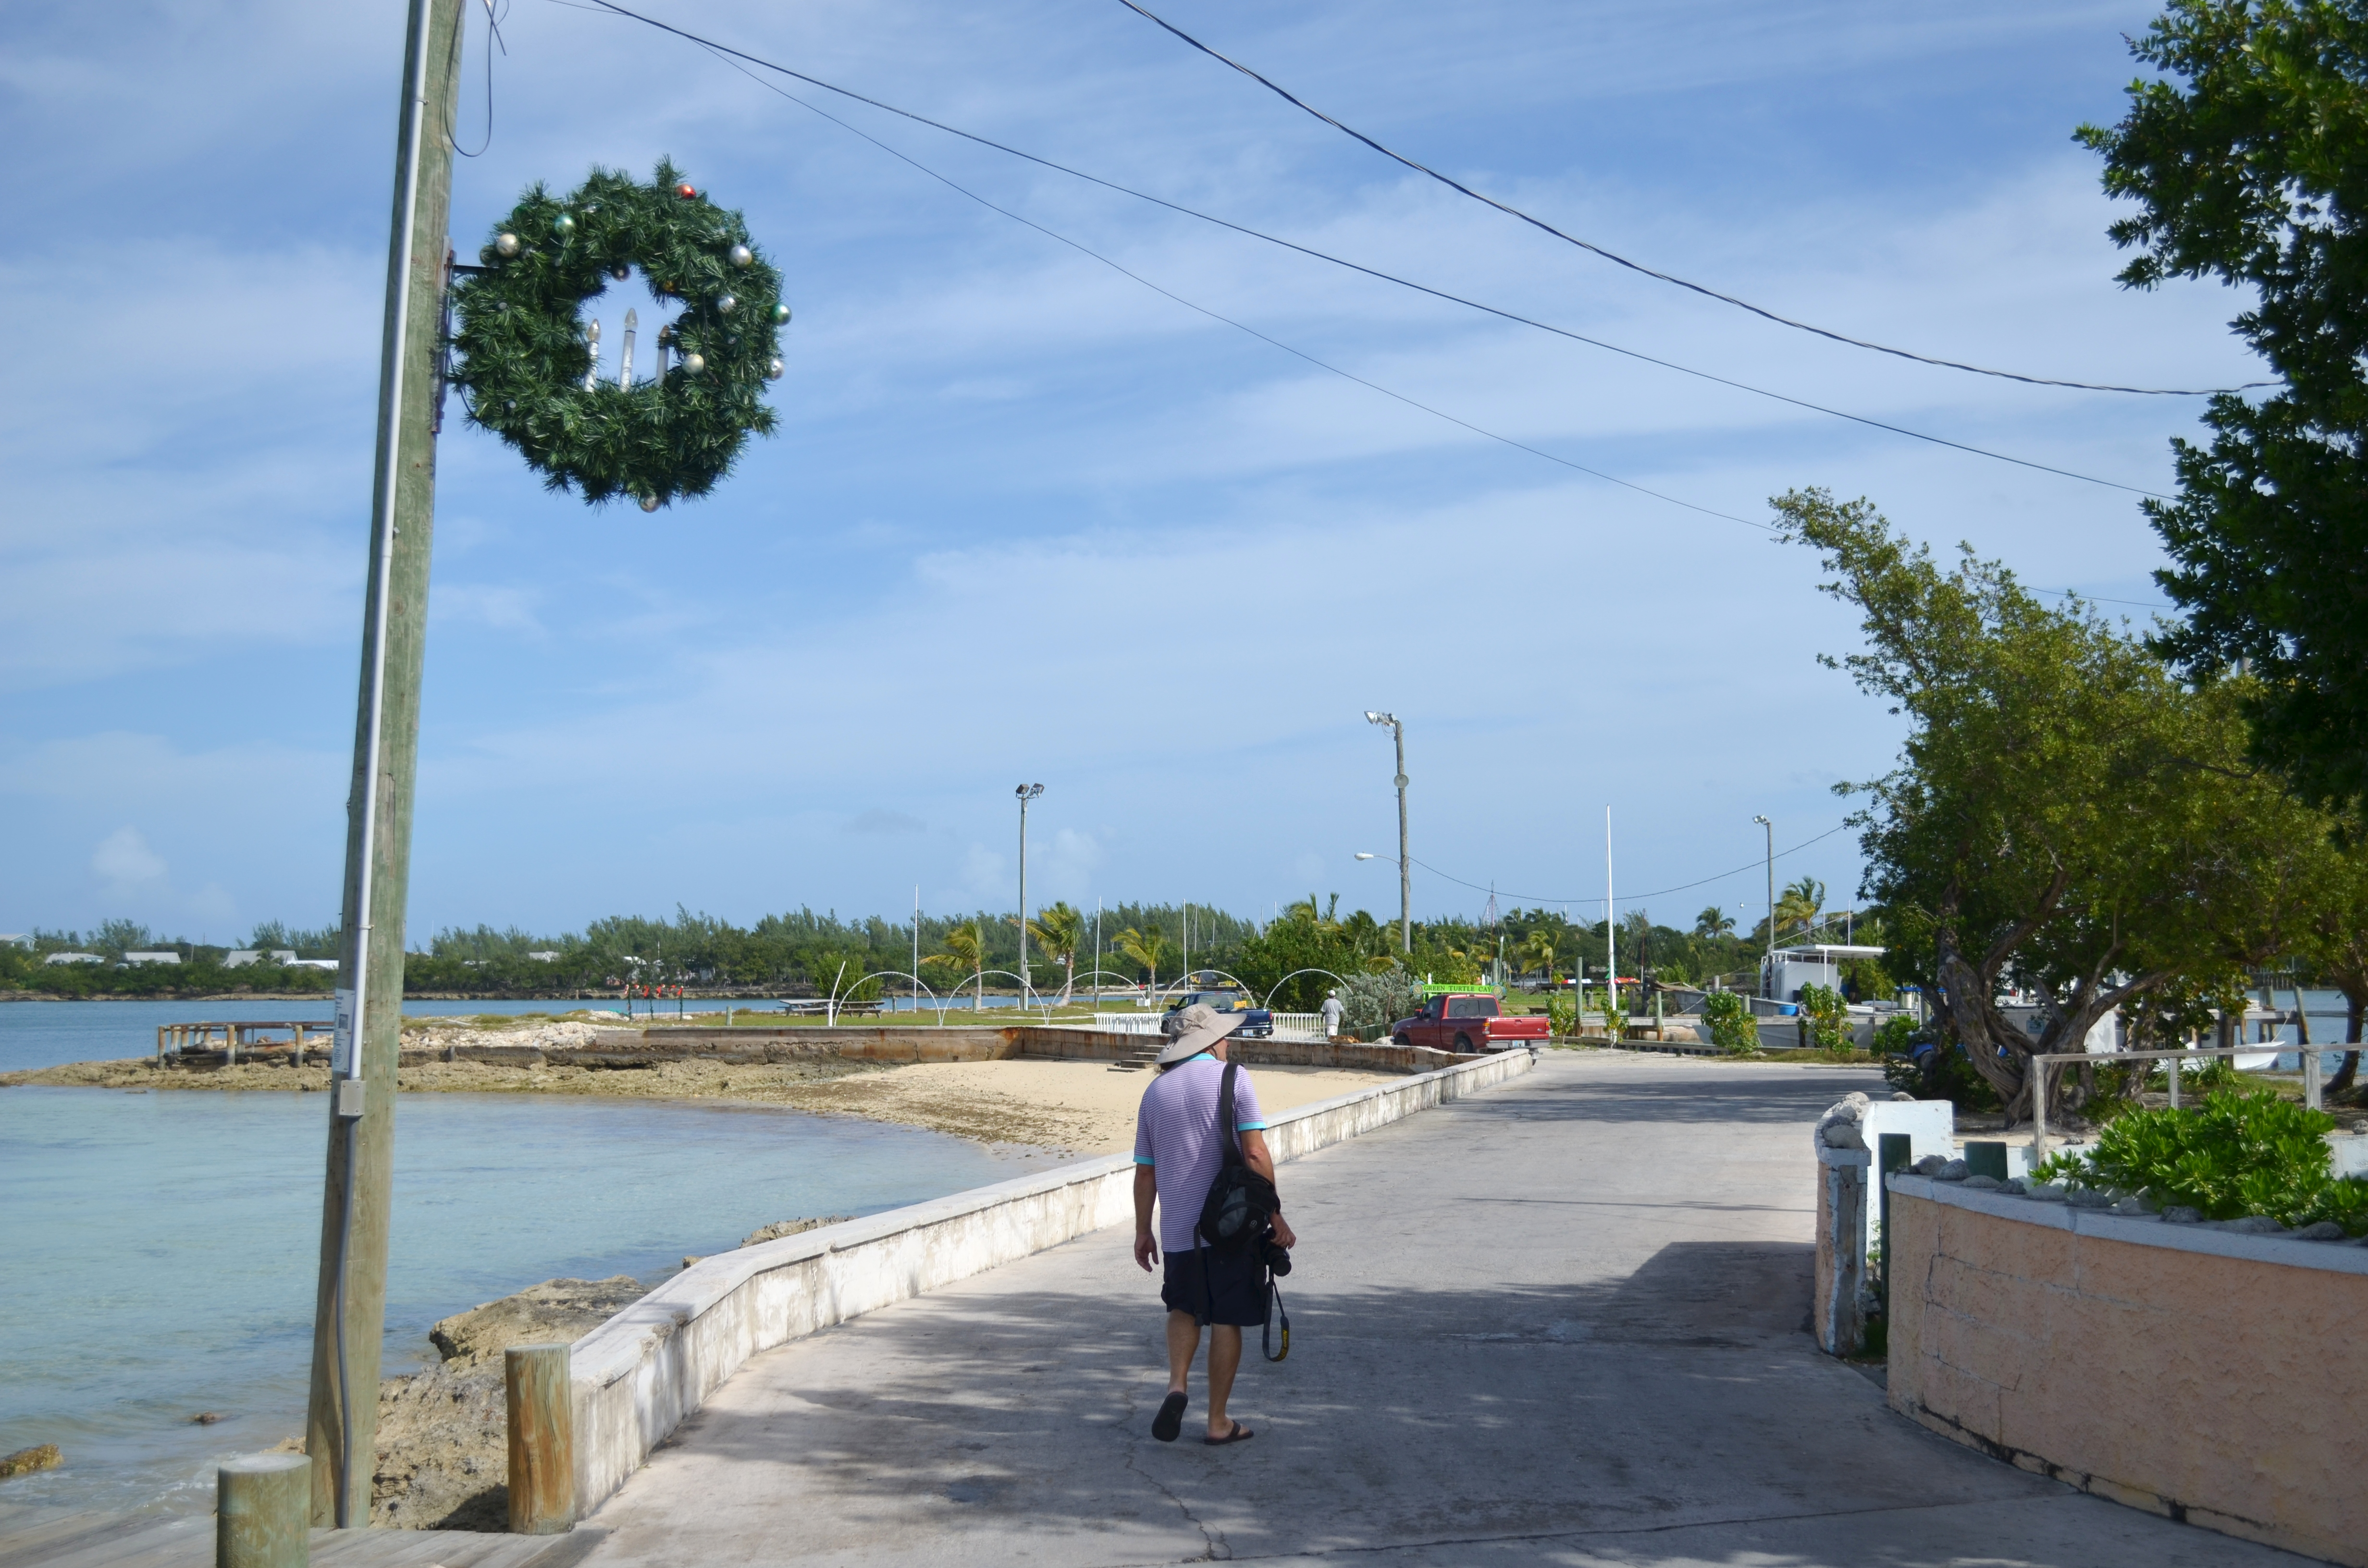 Mark walks through New Plymouth, Green Turtle Cay on Christmas Eve